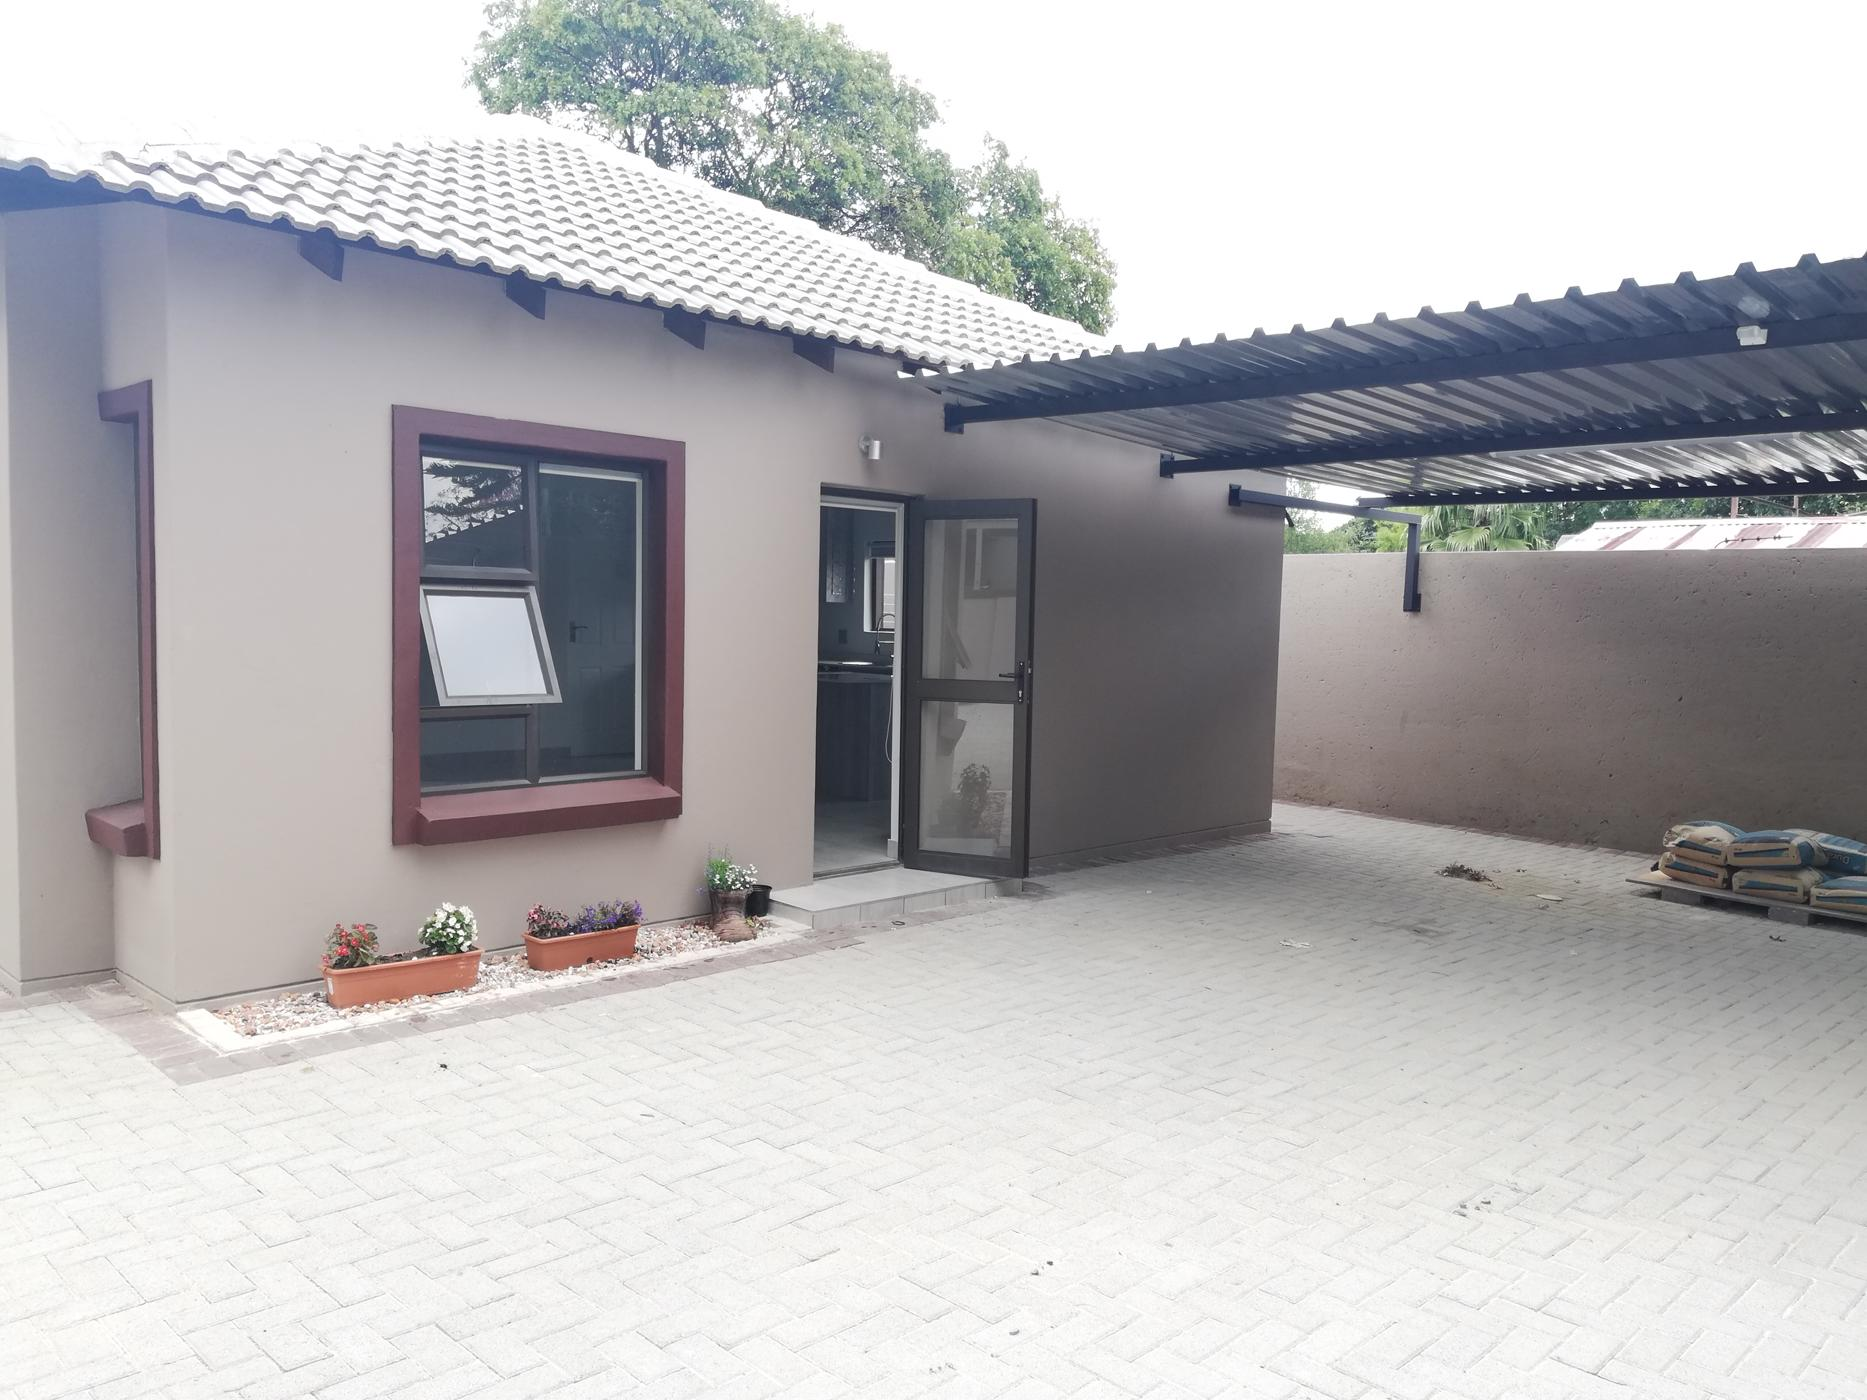 https://listing.pamgolding.co.za/images/properties/201903/1282860/H/1282860_H_7.jpg